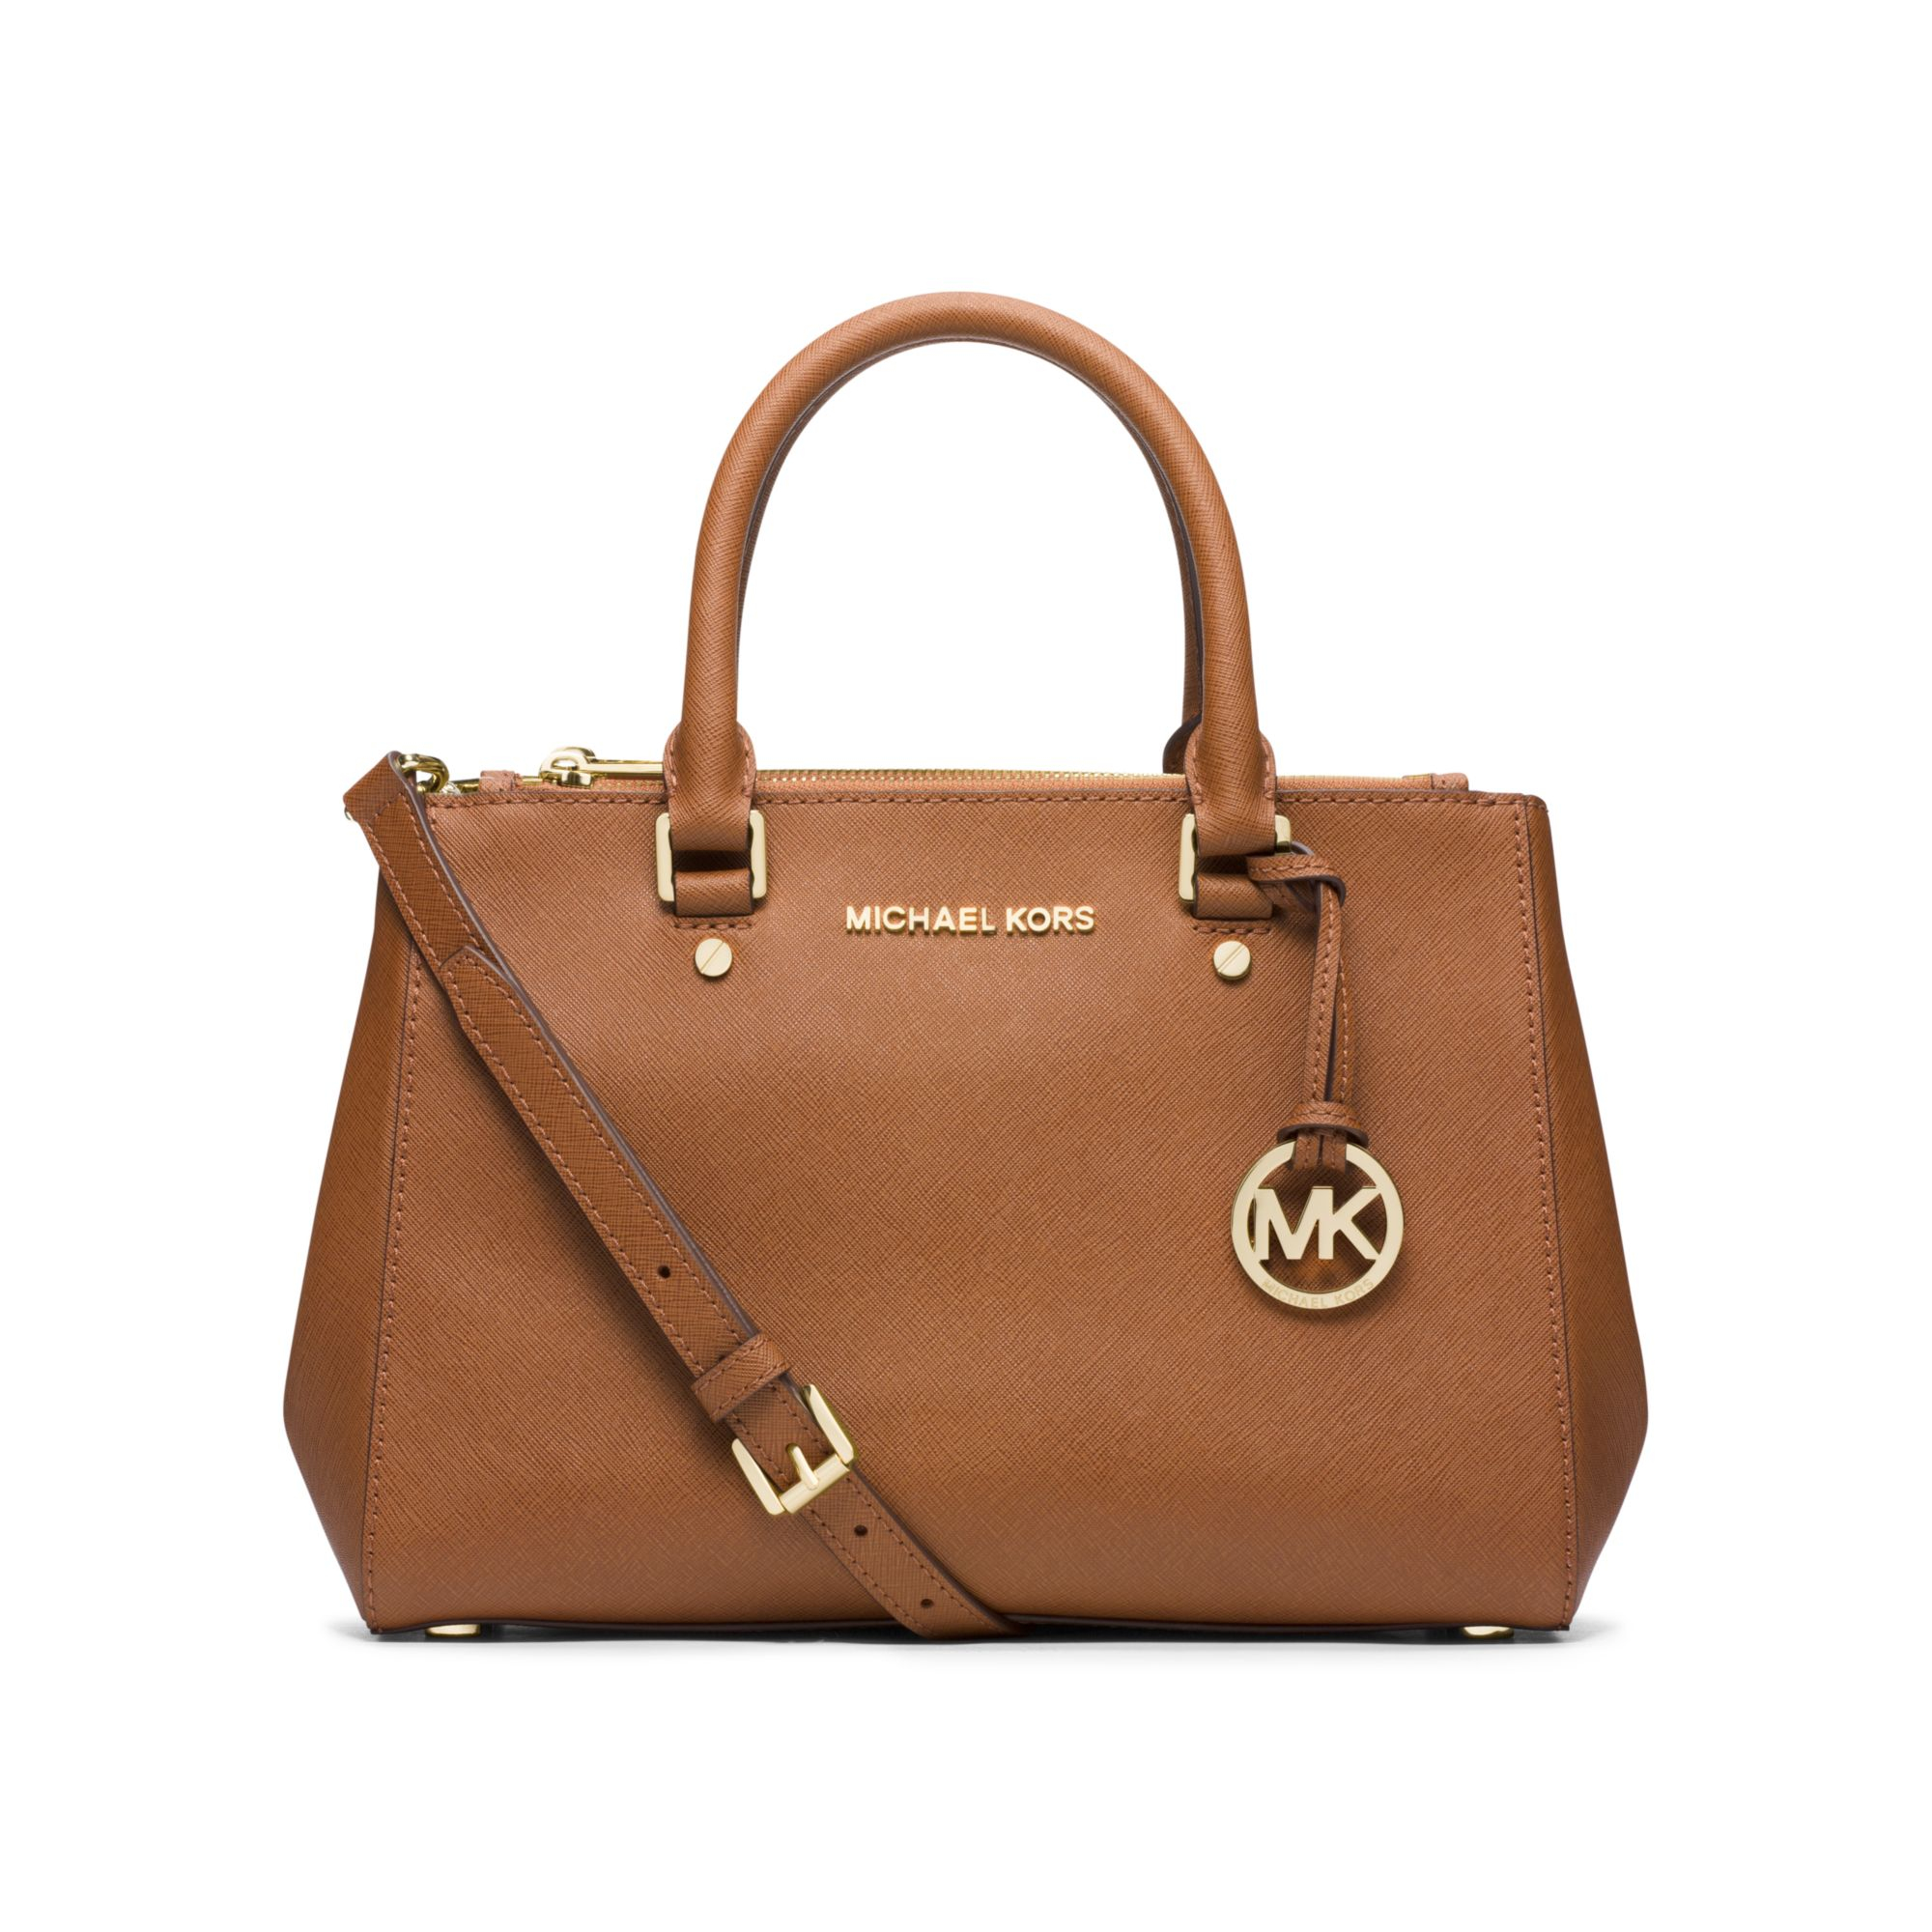 dd9d83756d73e Lyst - Michael Kors Sutton Small Saffiano Leather Satchel in Brown